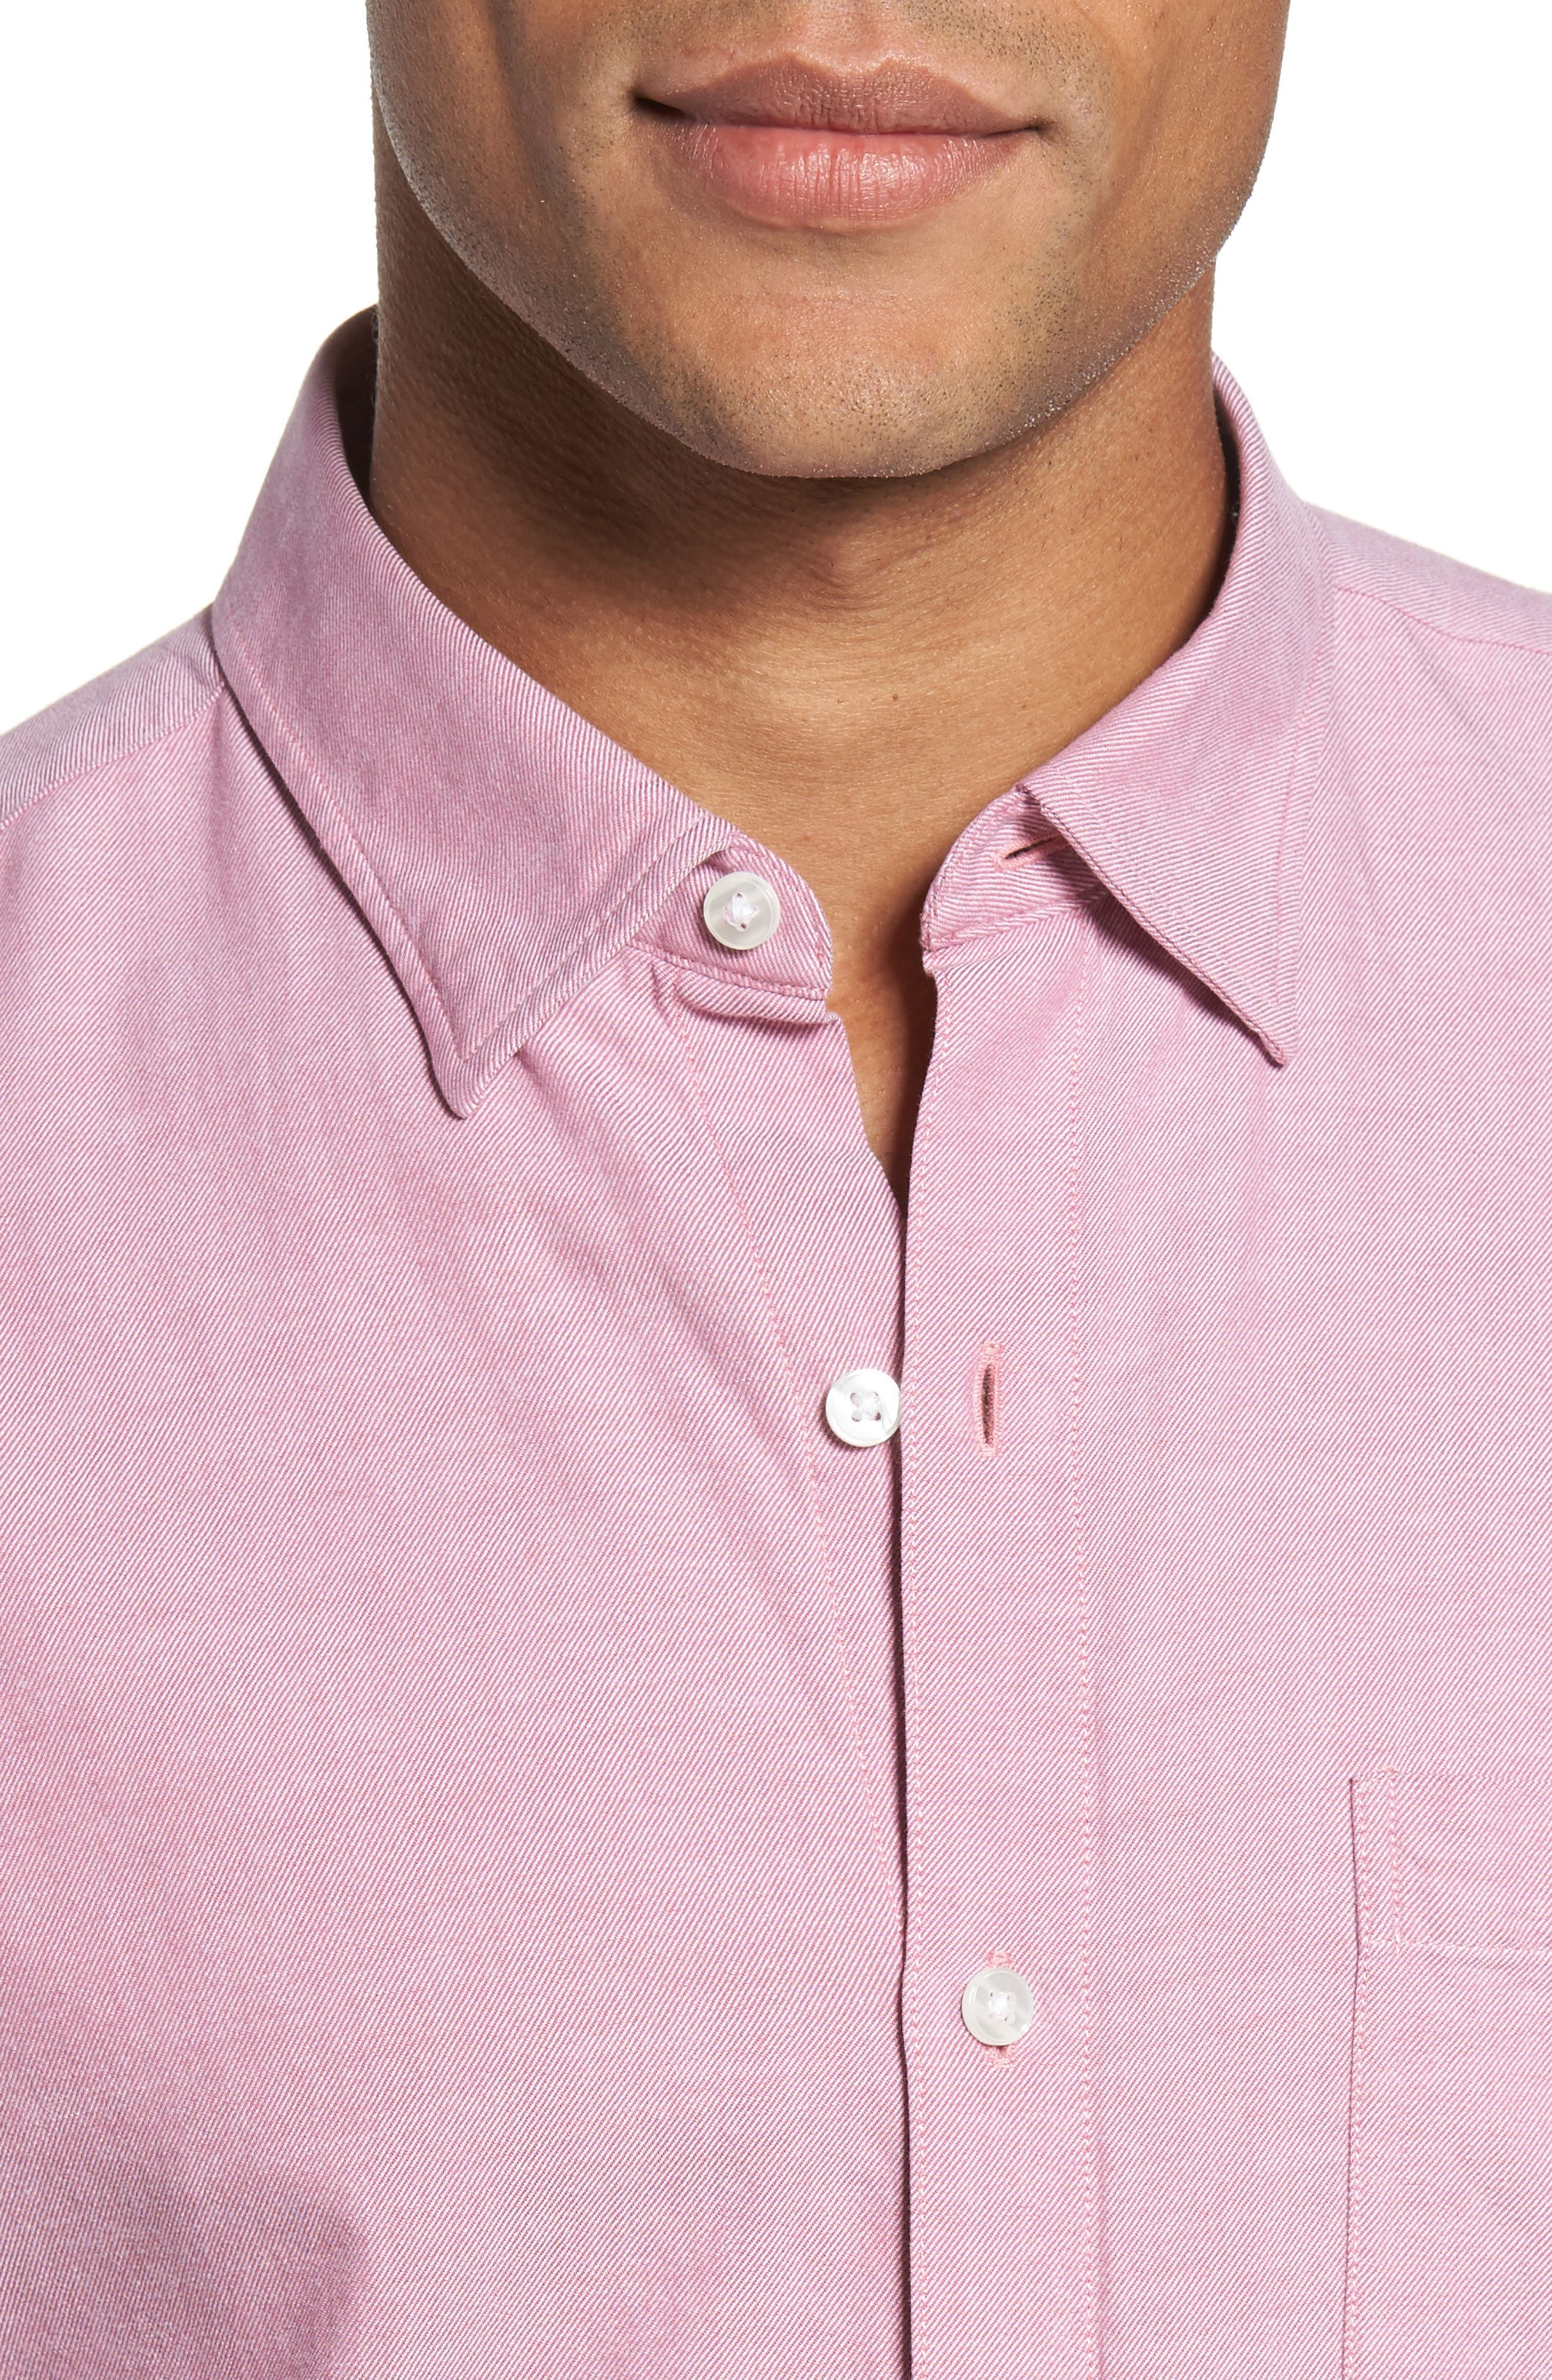 Slim Fit Brushed Twill Sport Shirt,                             Alternate thumbnail 4, color,                             650